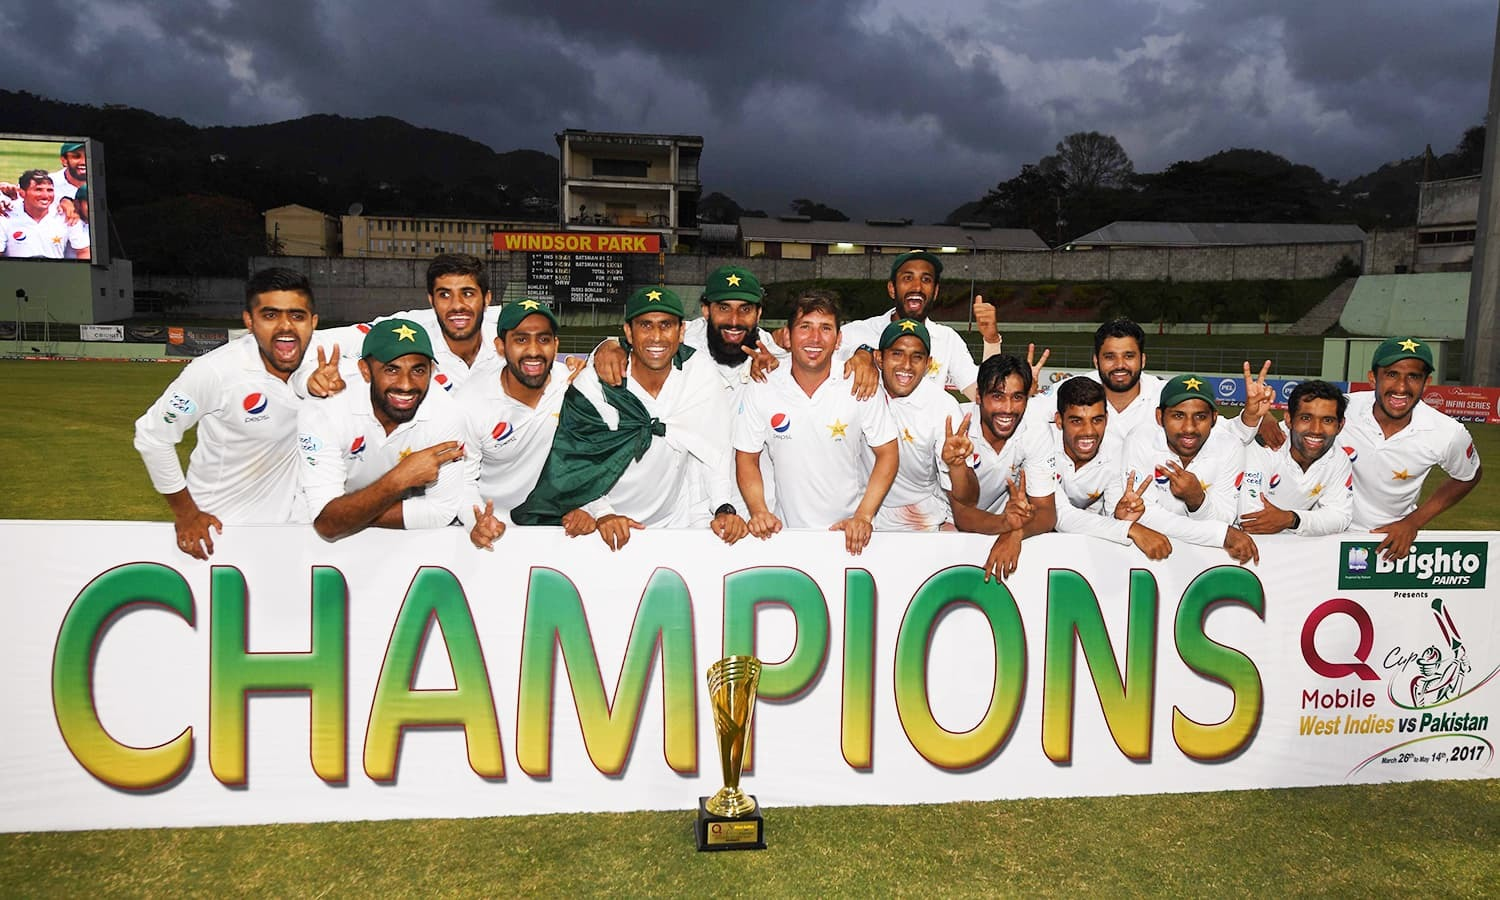 Shaharyar, Sethi felicitate Misbah, Younis and the rest